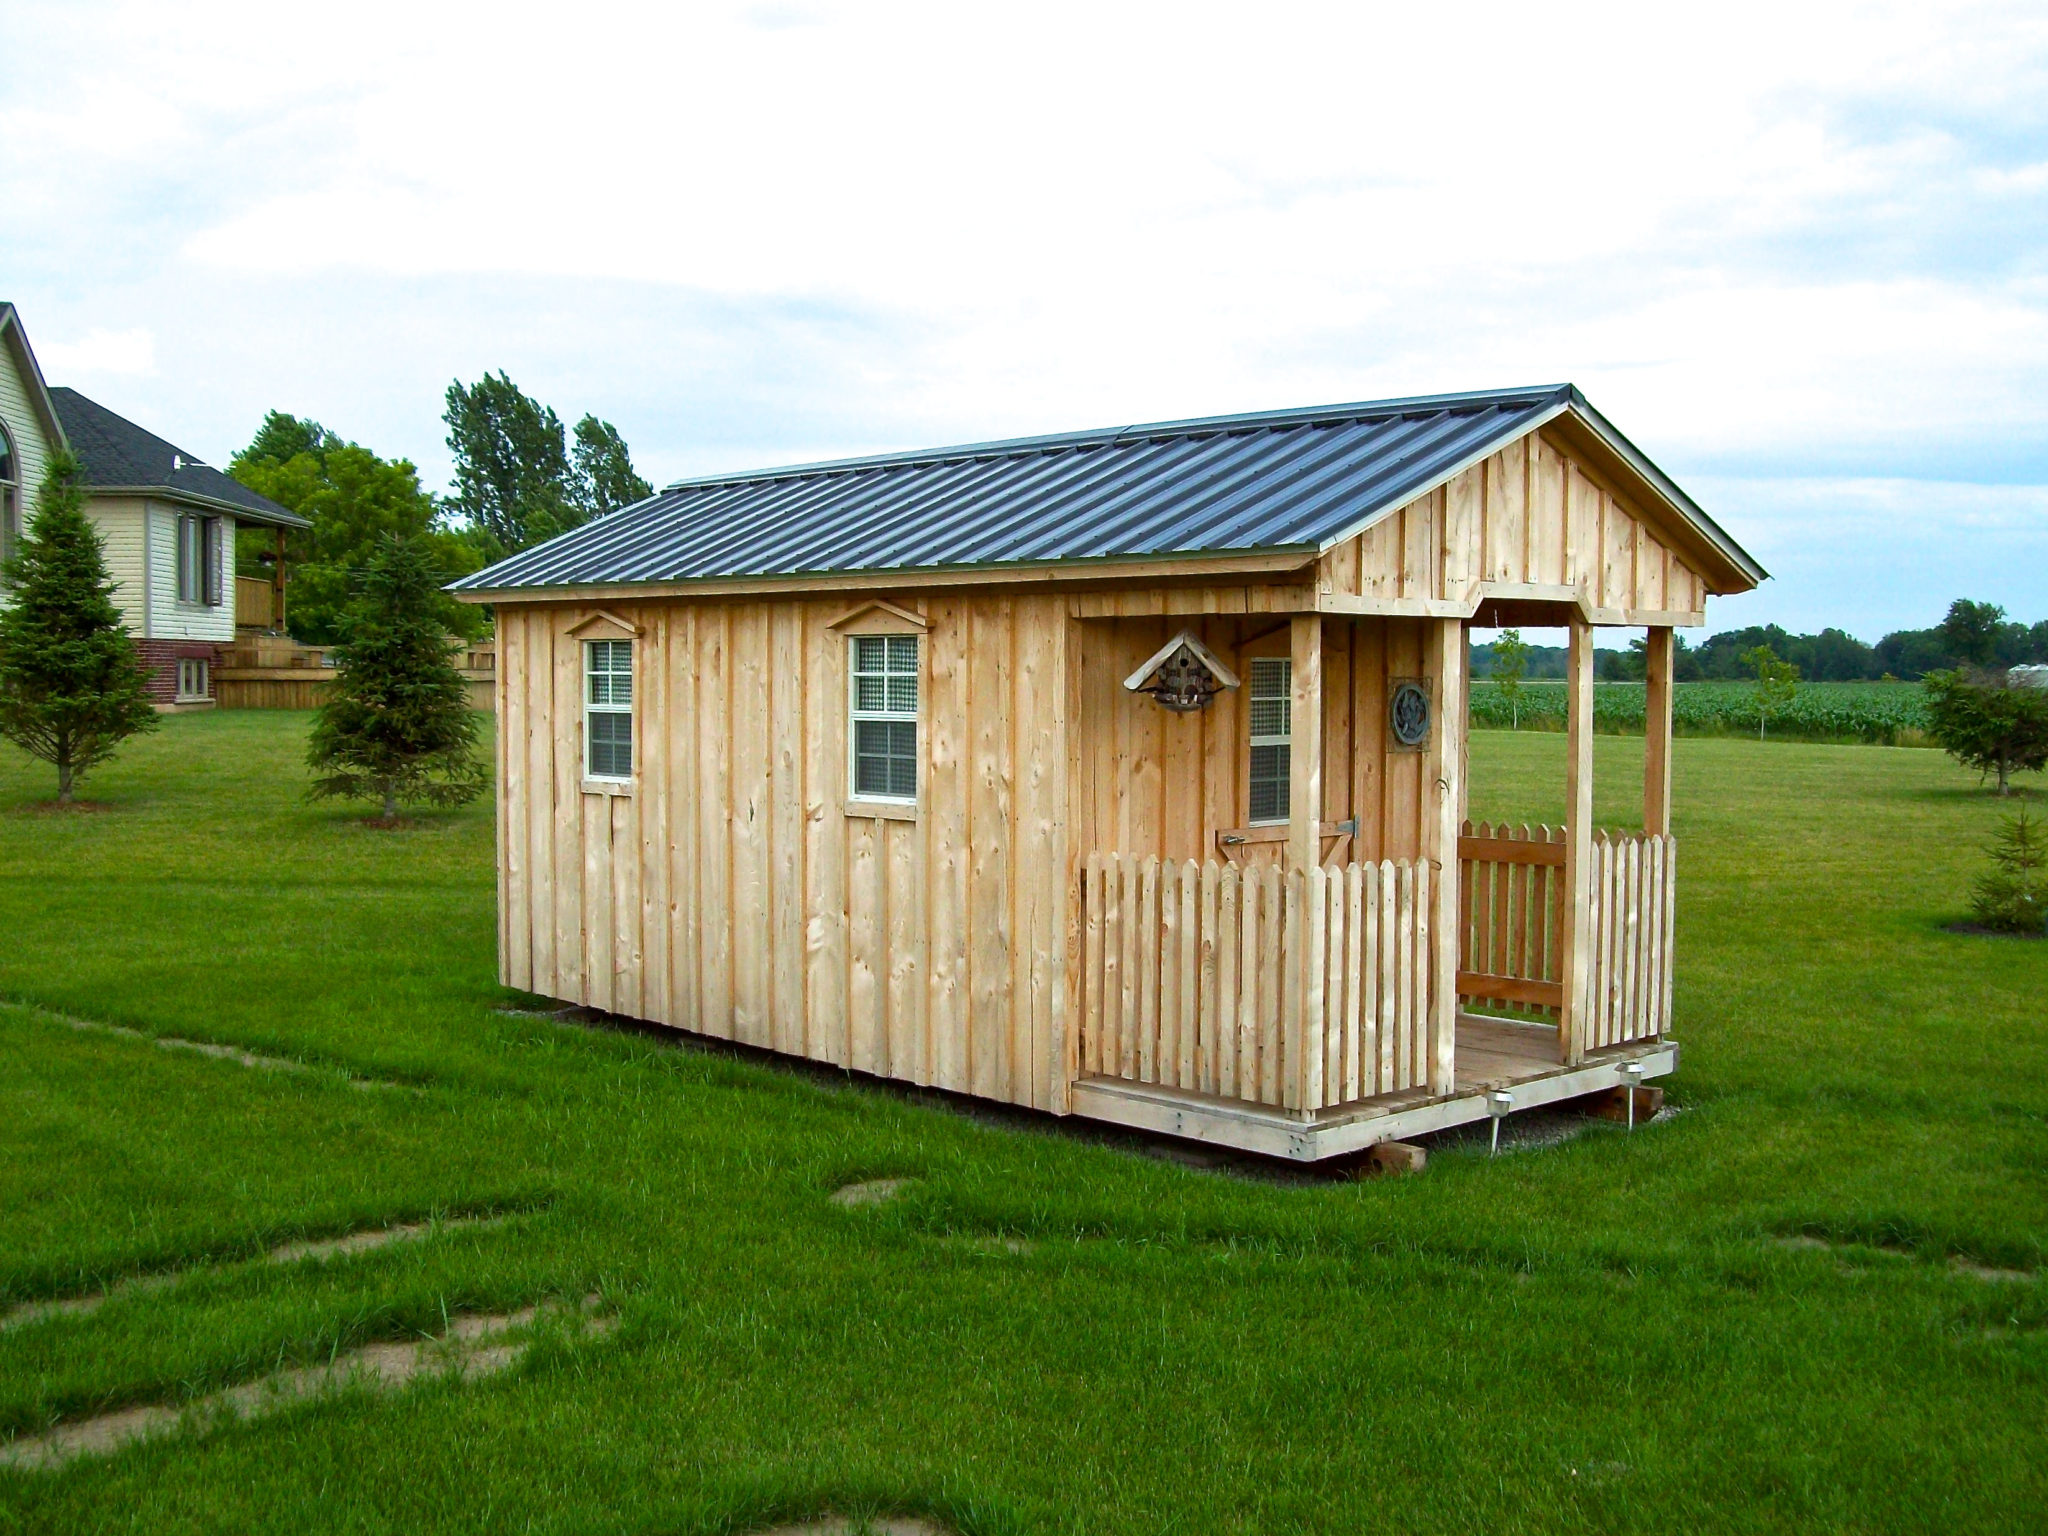 Amish Shed with porch and green roof